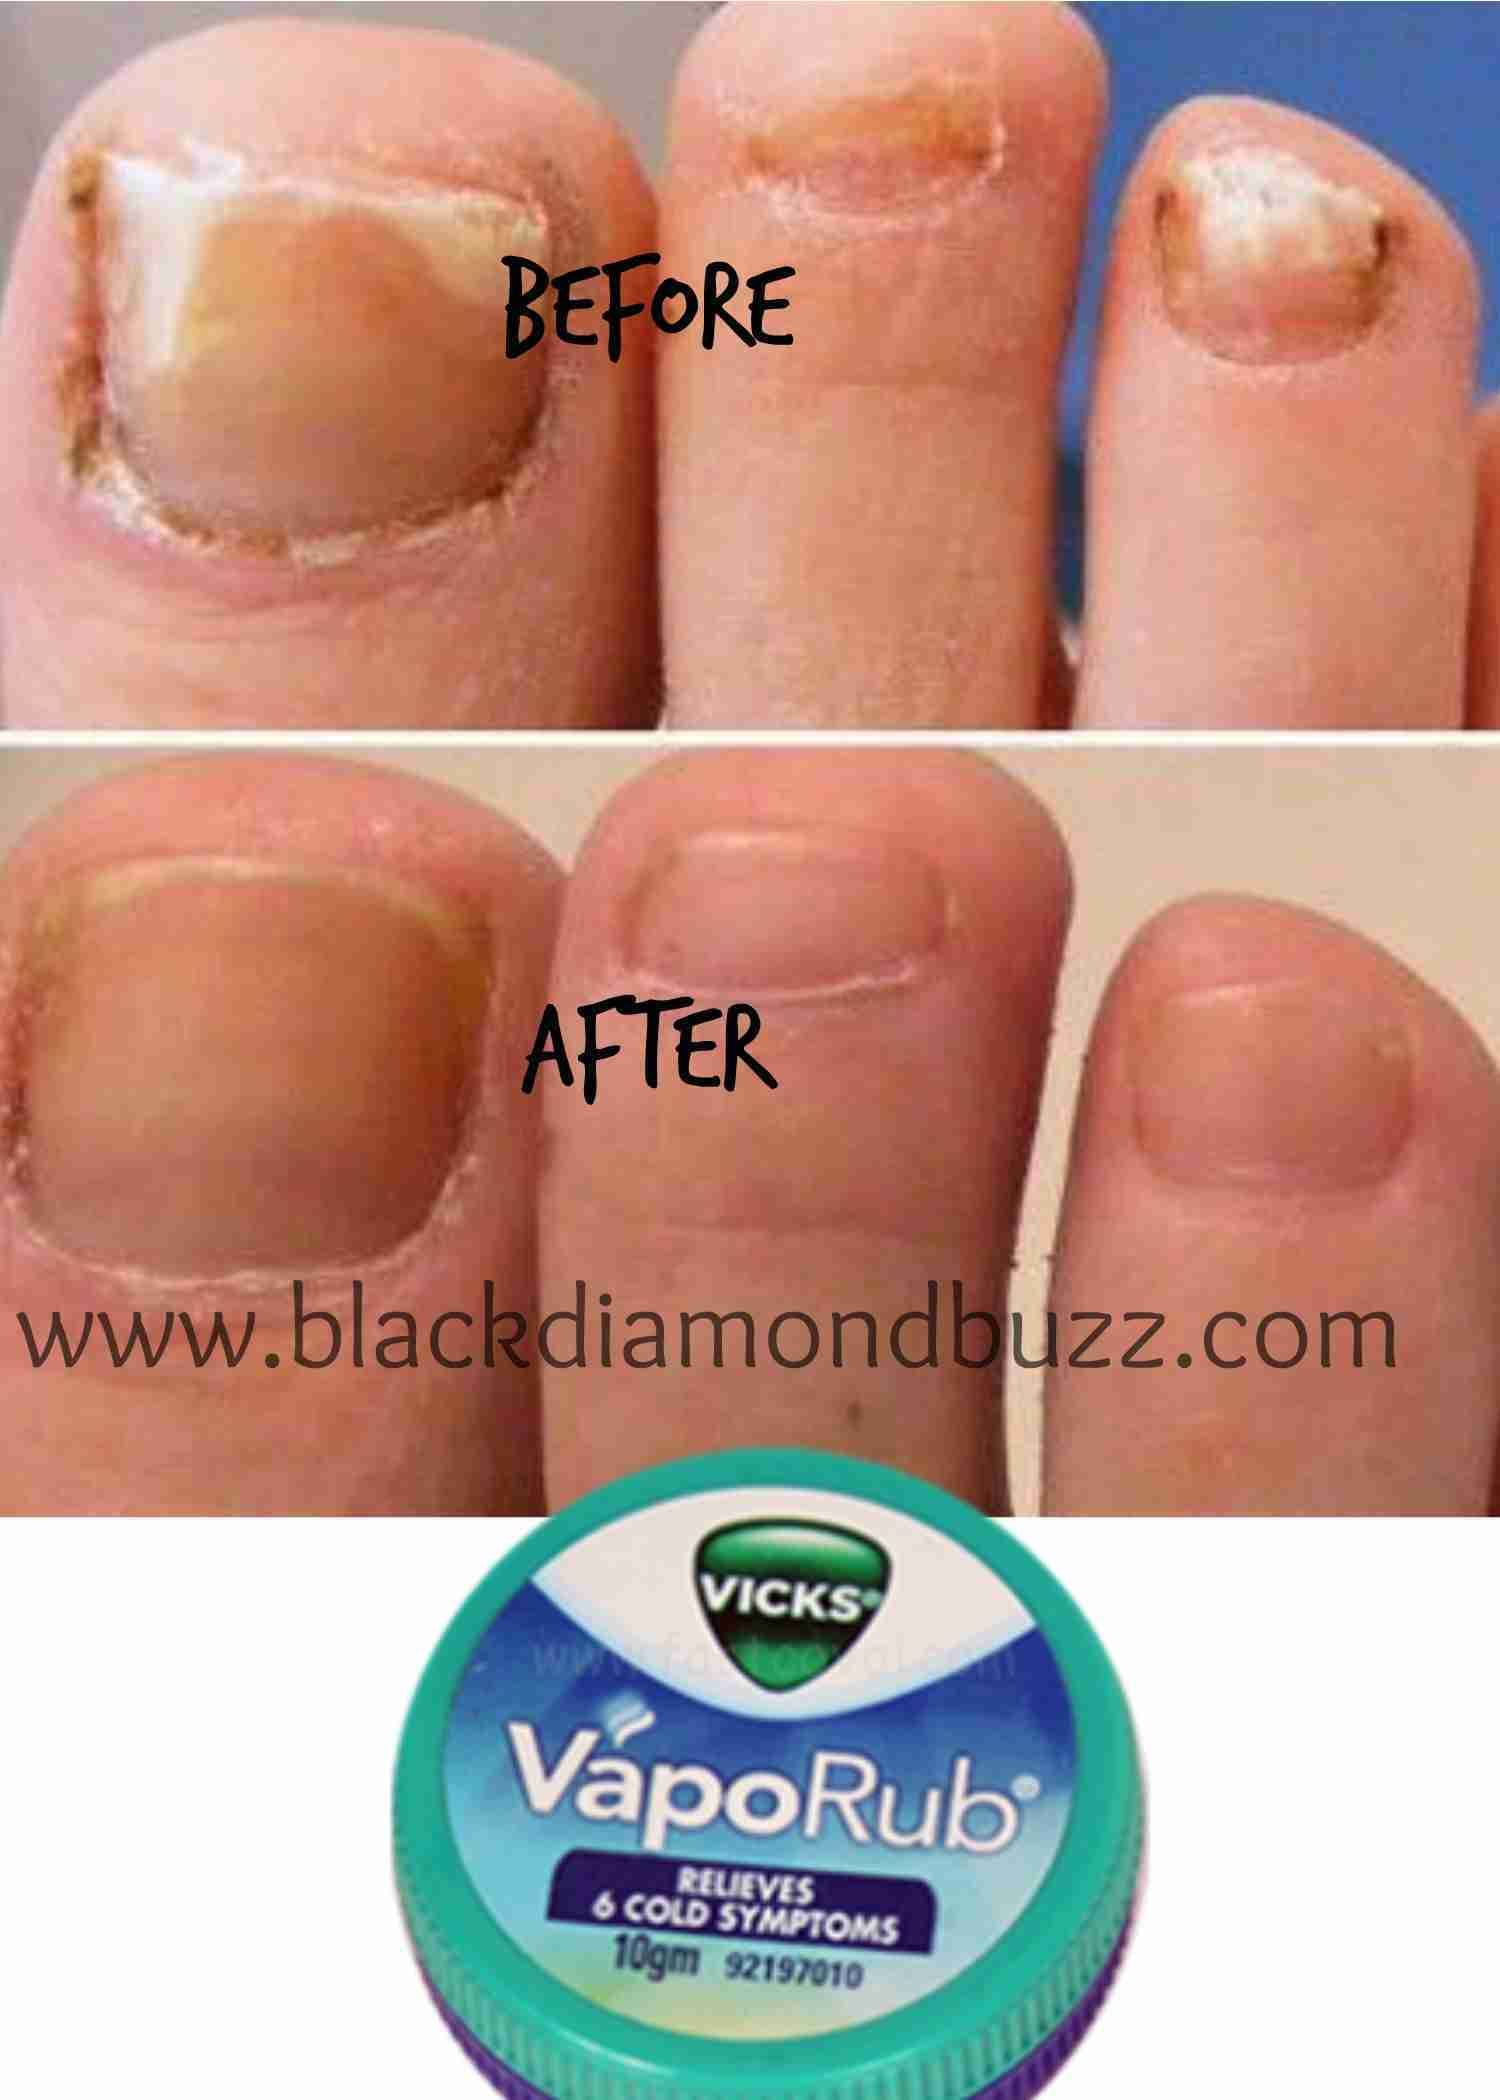 13 Myths Uncovered About Vicks Vaporub Uses | Now I know | Vicks ...